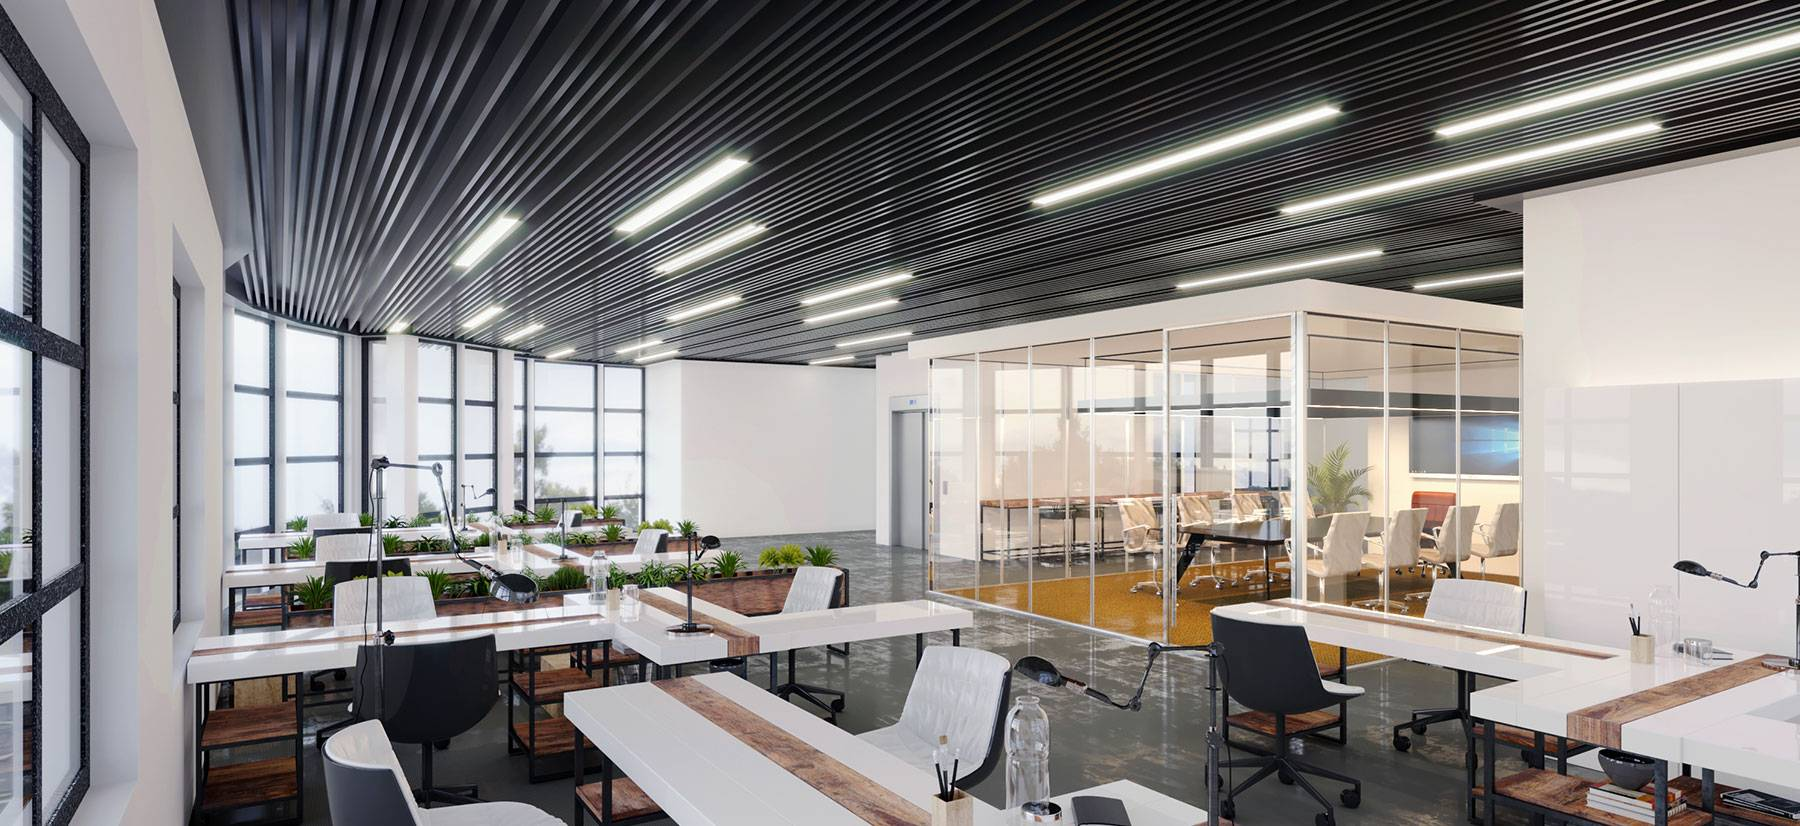 sample office project by the City government of San Diego